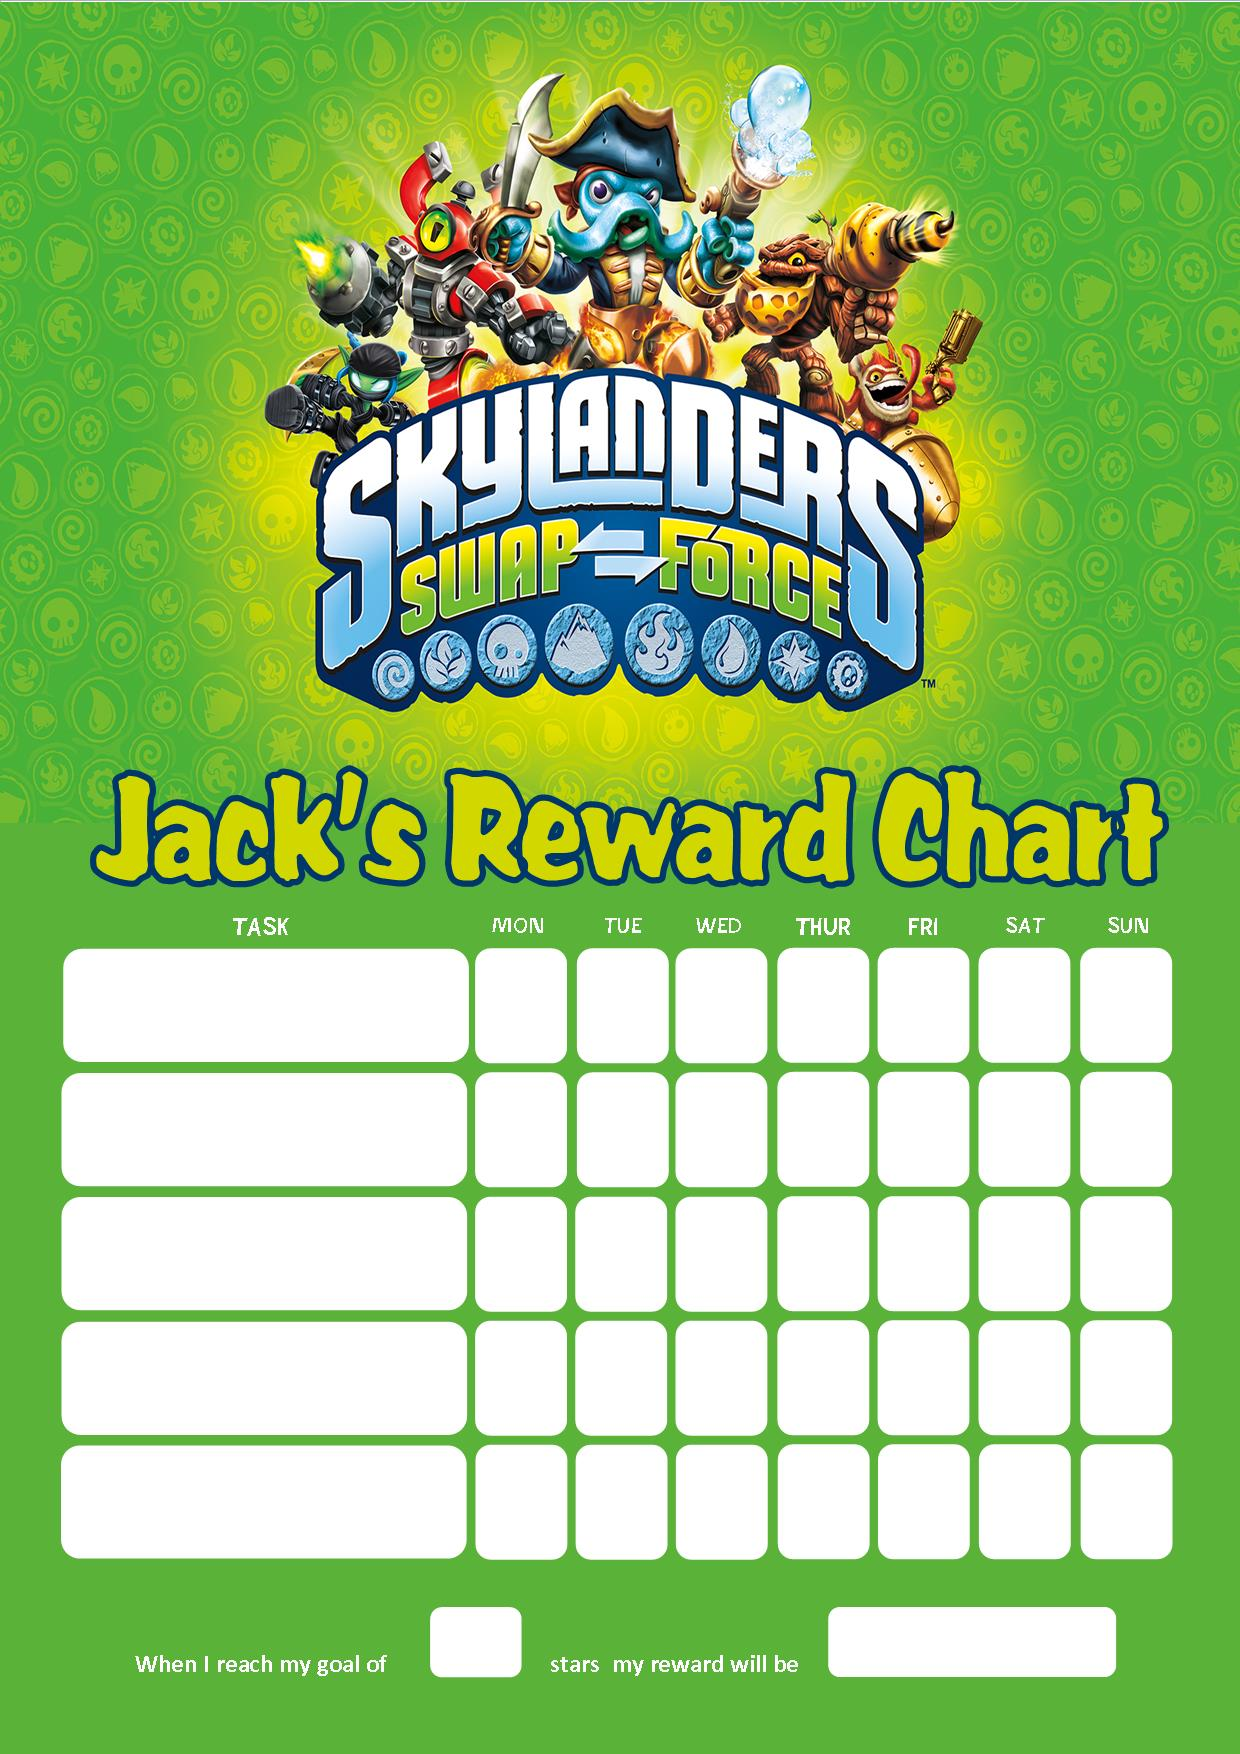 Skylander Invitations was nice invitation design